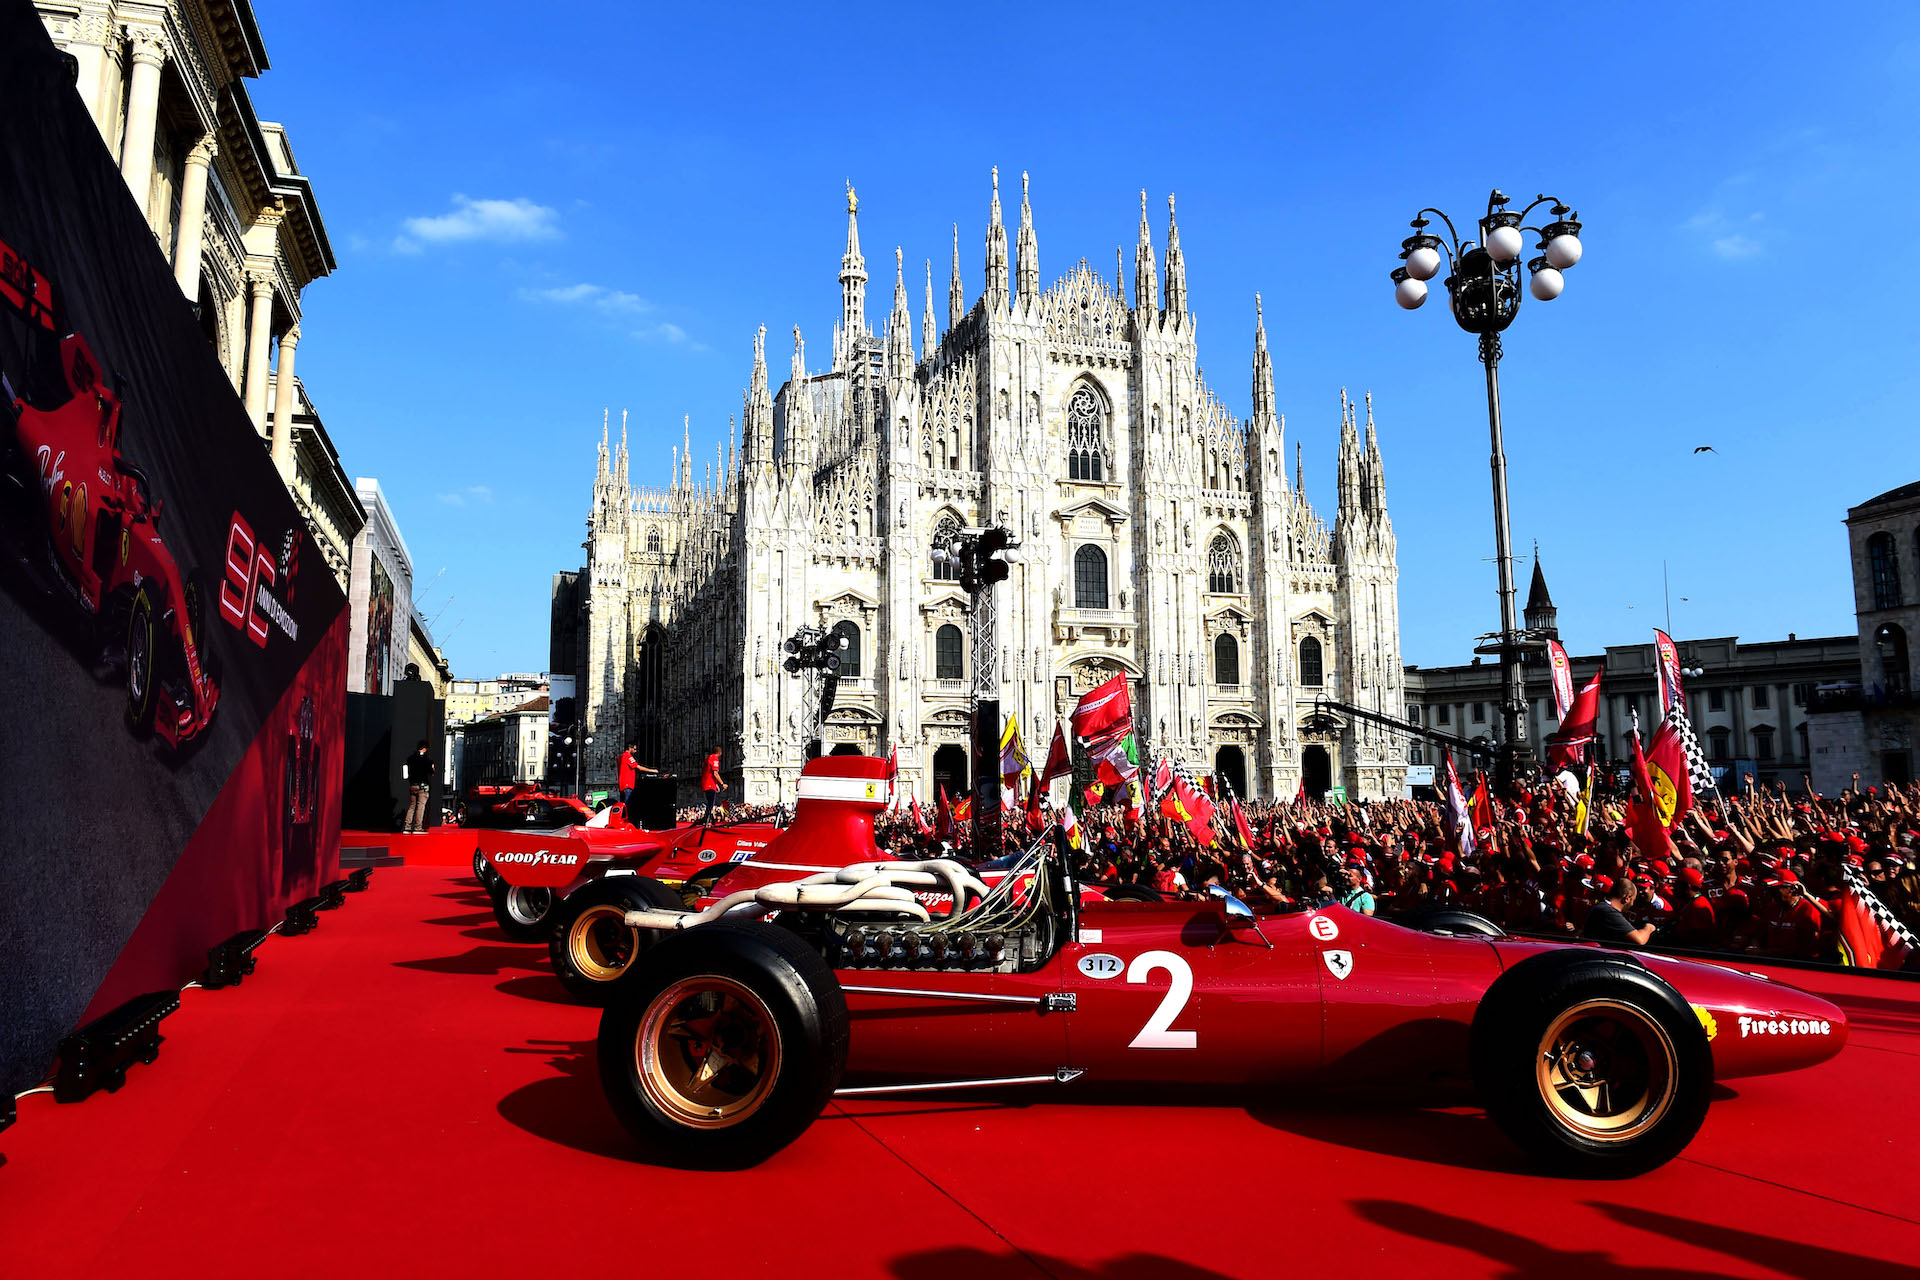 2019 Ferrari 90 Years celebration at Milan | 4 Sept 2019 website 4.jpg